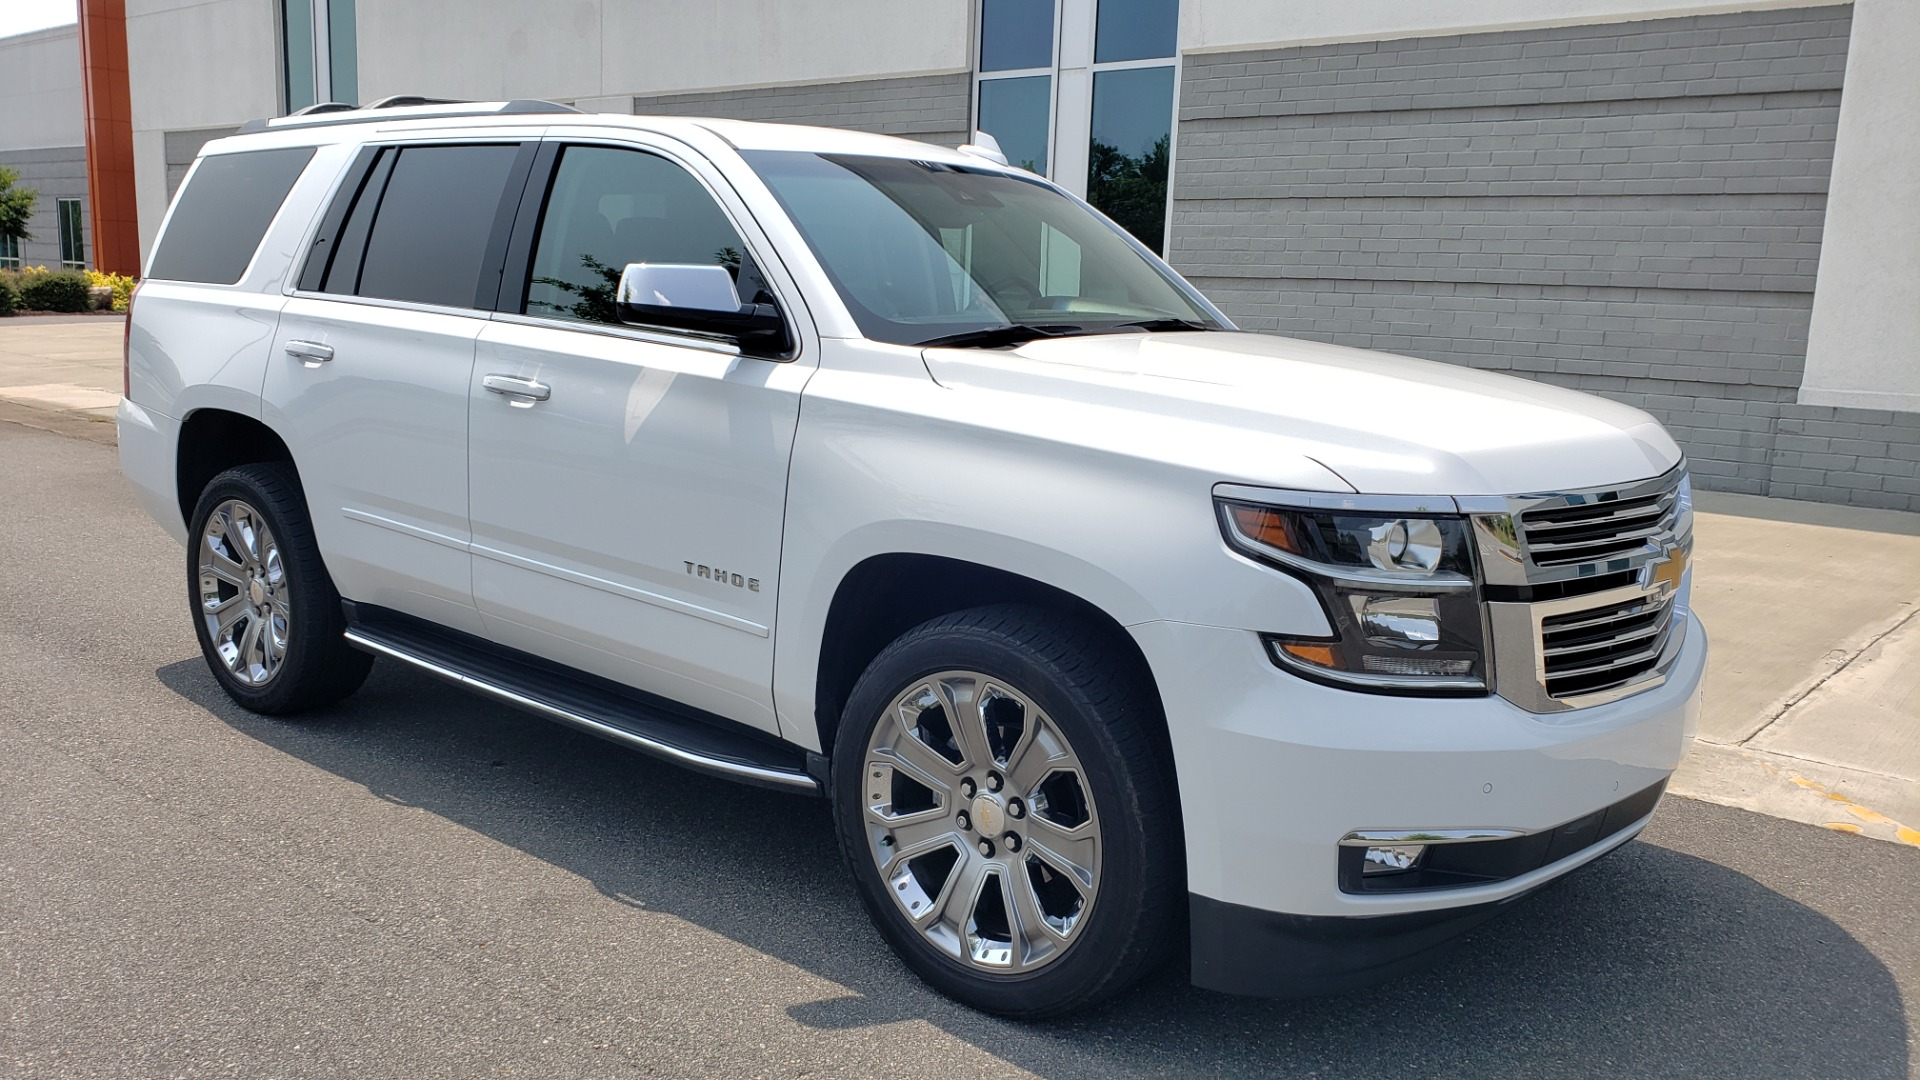 Used 2018 Chevrolet TAHOE PREMIER 4WD / NAV / SUNROOF / BOSE / 3-ROW / HUD / REARVIEW for sale $63,995 at Formula Imports in Charlotte NC 28227 8